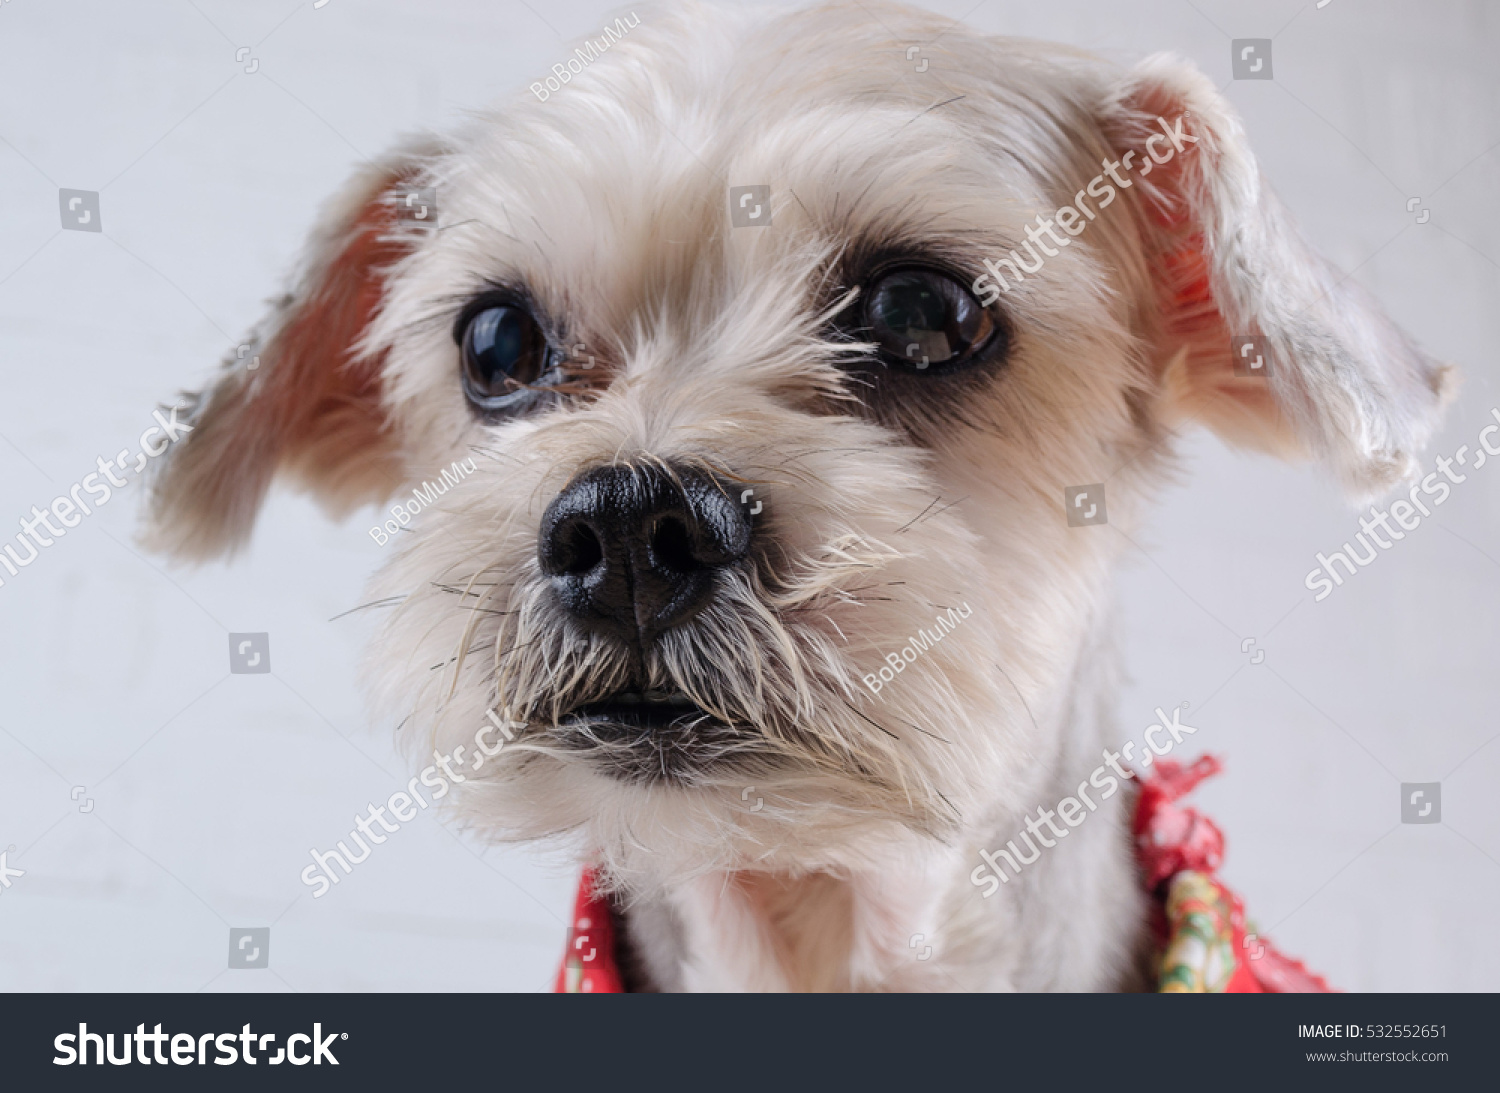 Cute Short Hair Mixed Breed Puppy Stock Photo Edit Now 532552651